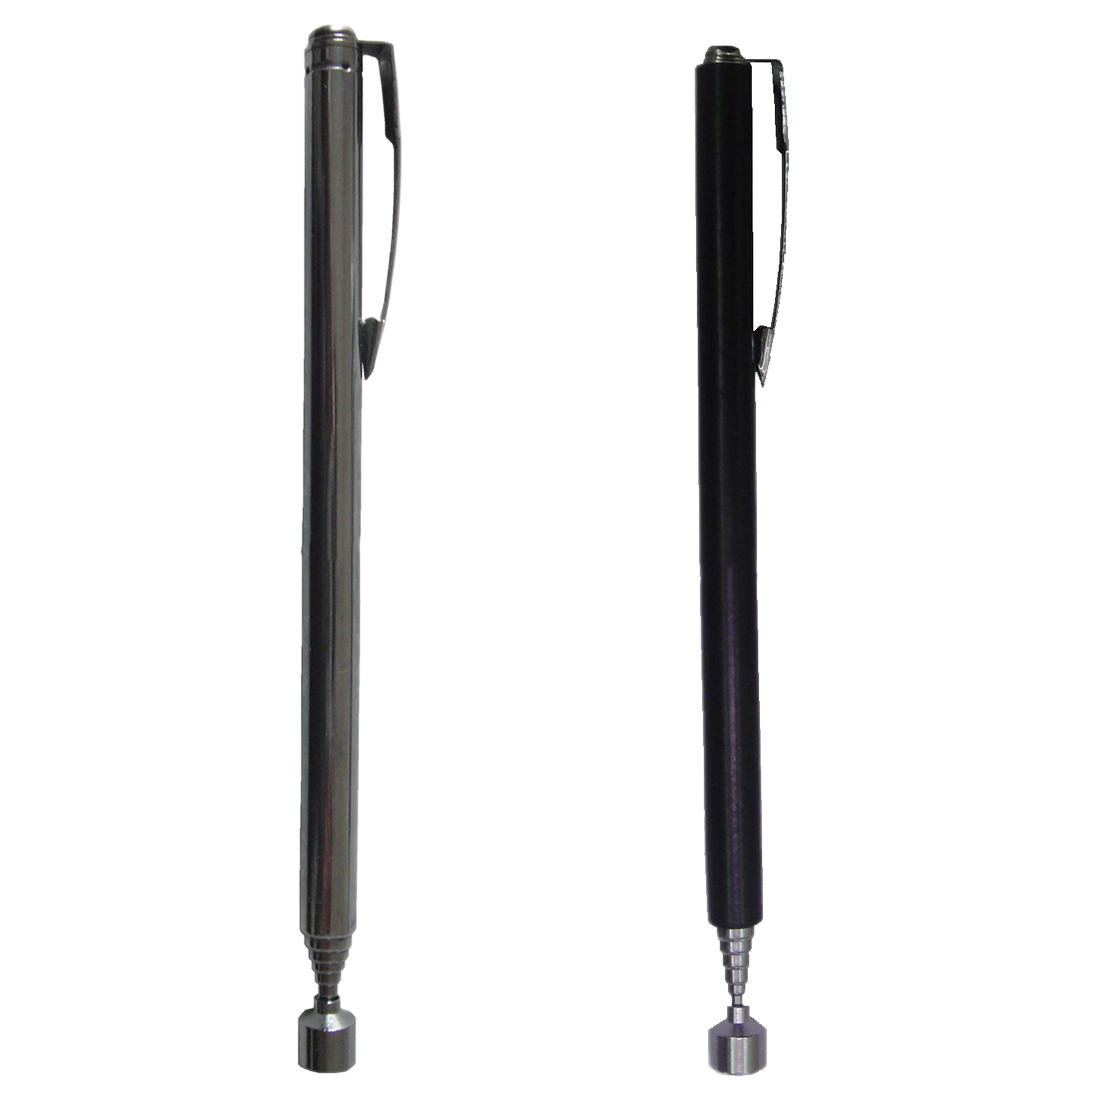 Magnetic Pick Up Rod Stick Magnet Extending Telescopic Rod Magnetic Pick Up Tools Hand Tool Black Silver Optional